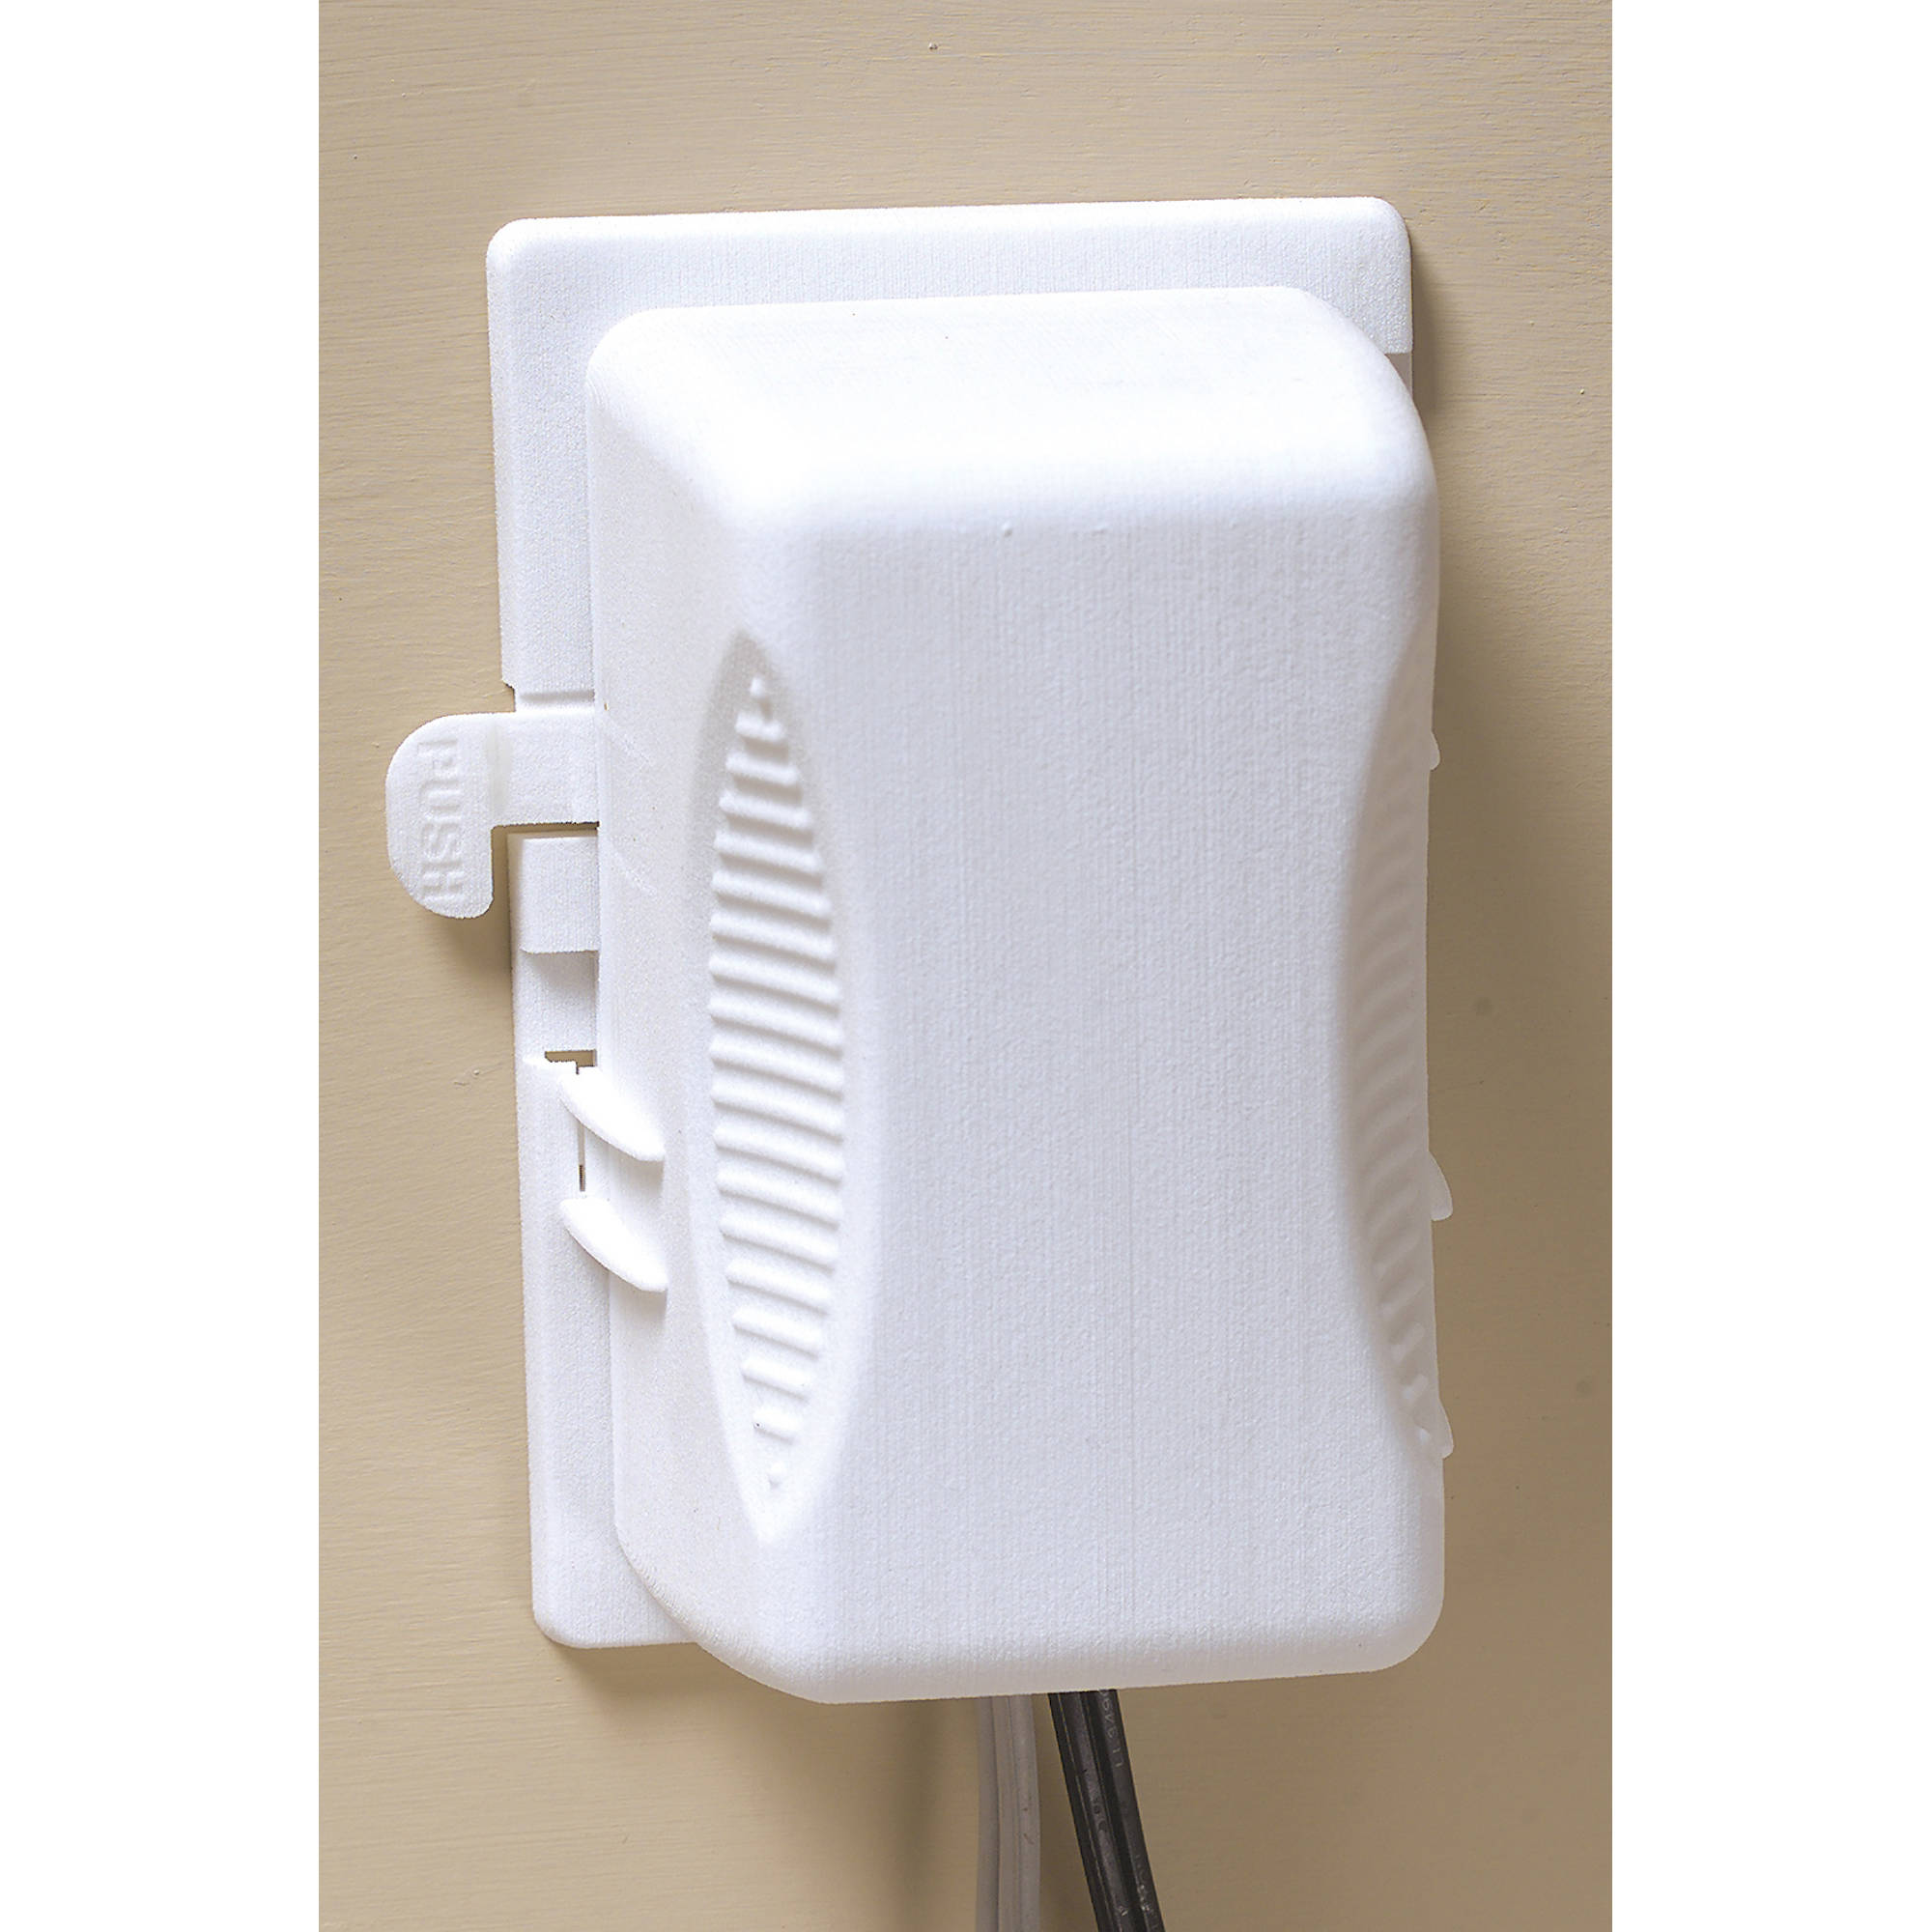 Outlet Covers & Plugs